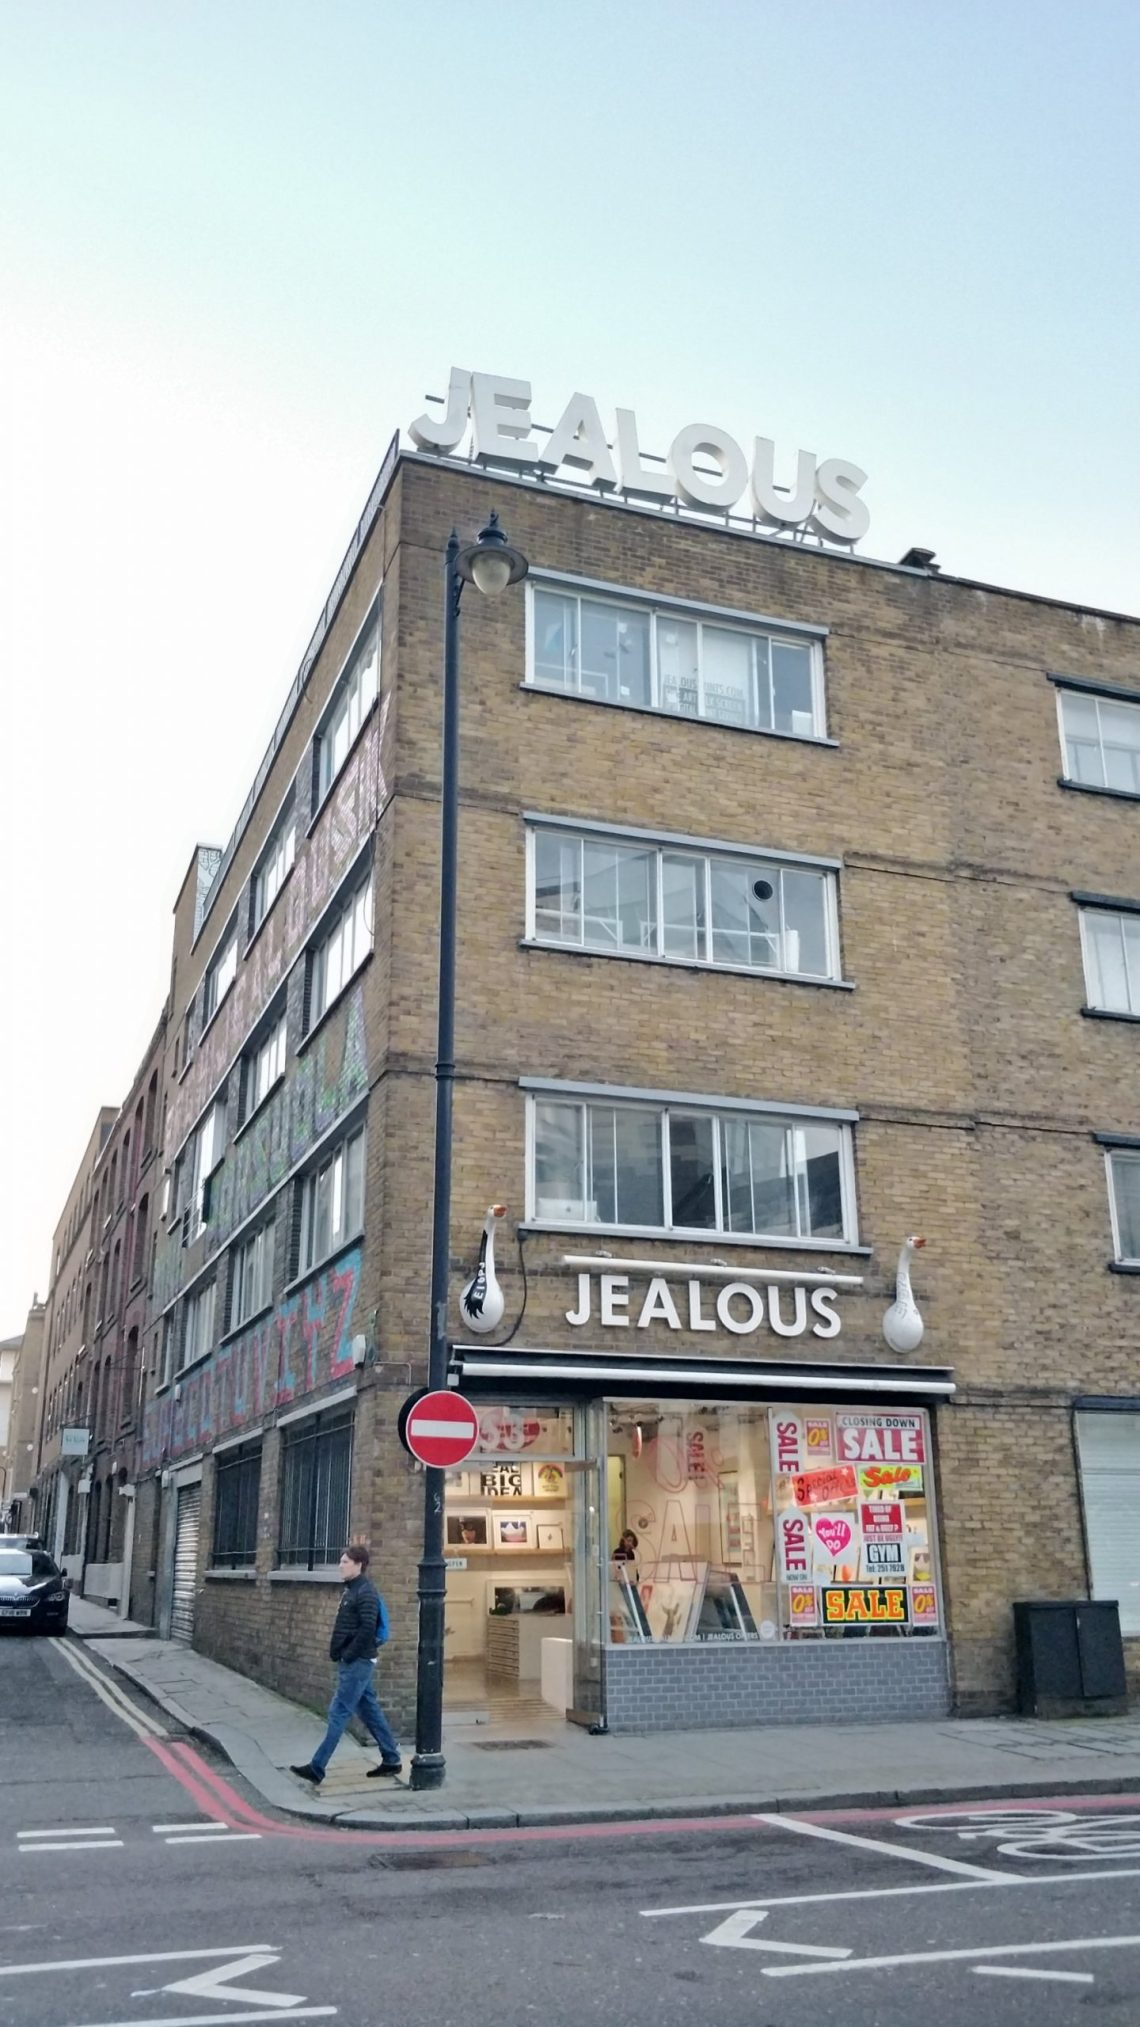 The Jealous Gallery in Shoreditch